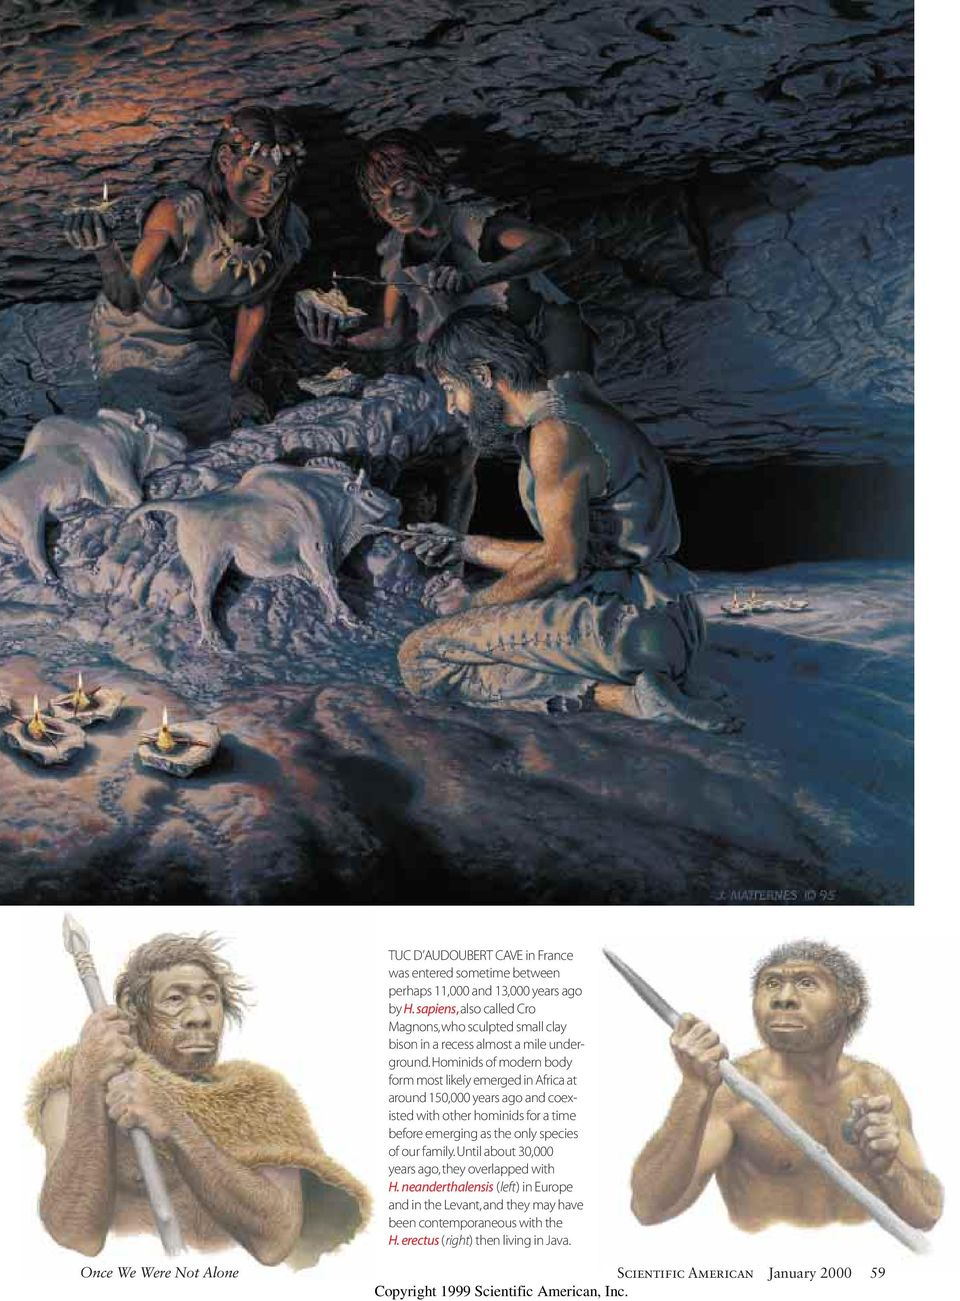 hominids of modern body form most likely emerged in Africa at around 150,000 years ago and coexisted with other hominids for a time before emerging as the